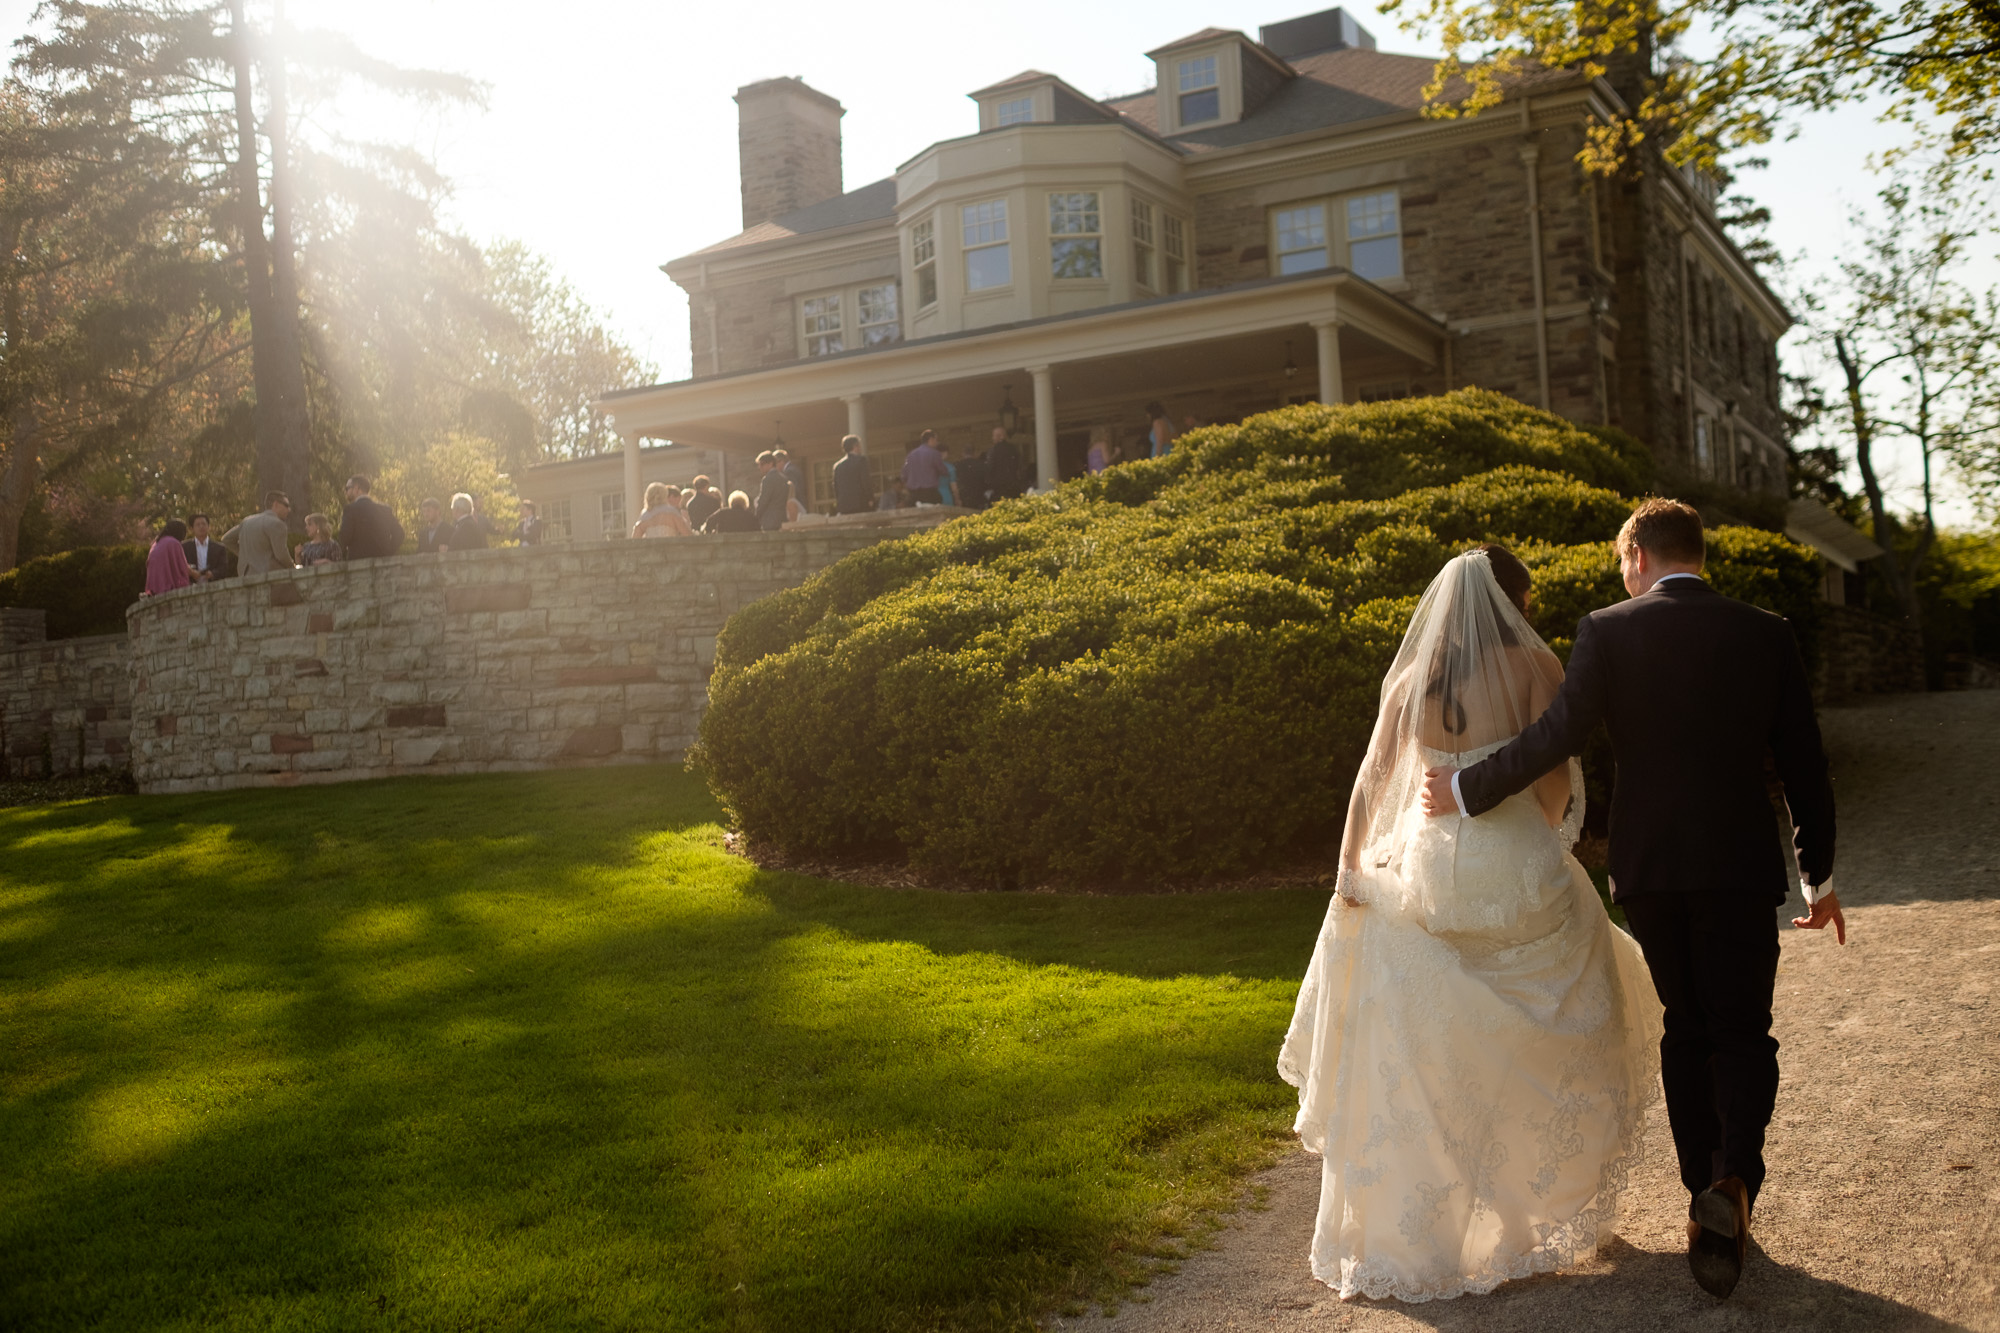 A wedding photograph of the bride and groom as the walk back to their reception at the Paletta Mansion in Mississauga.